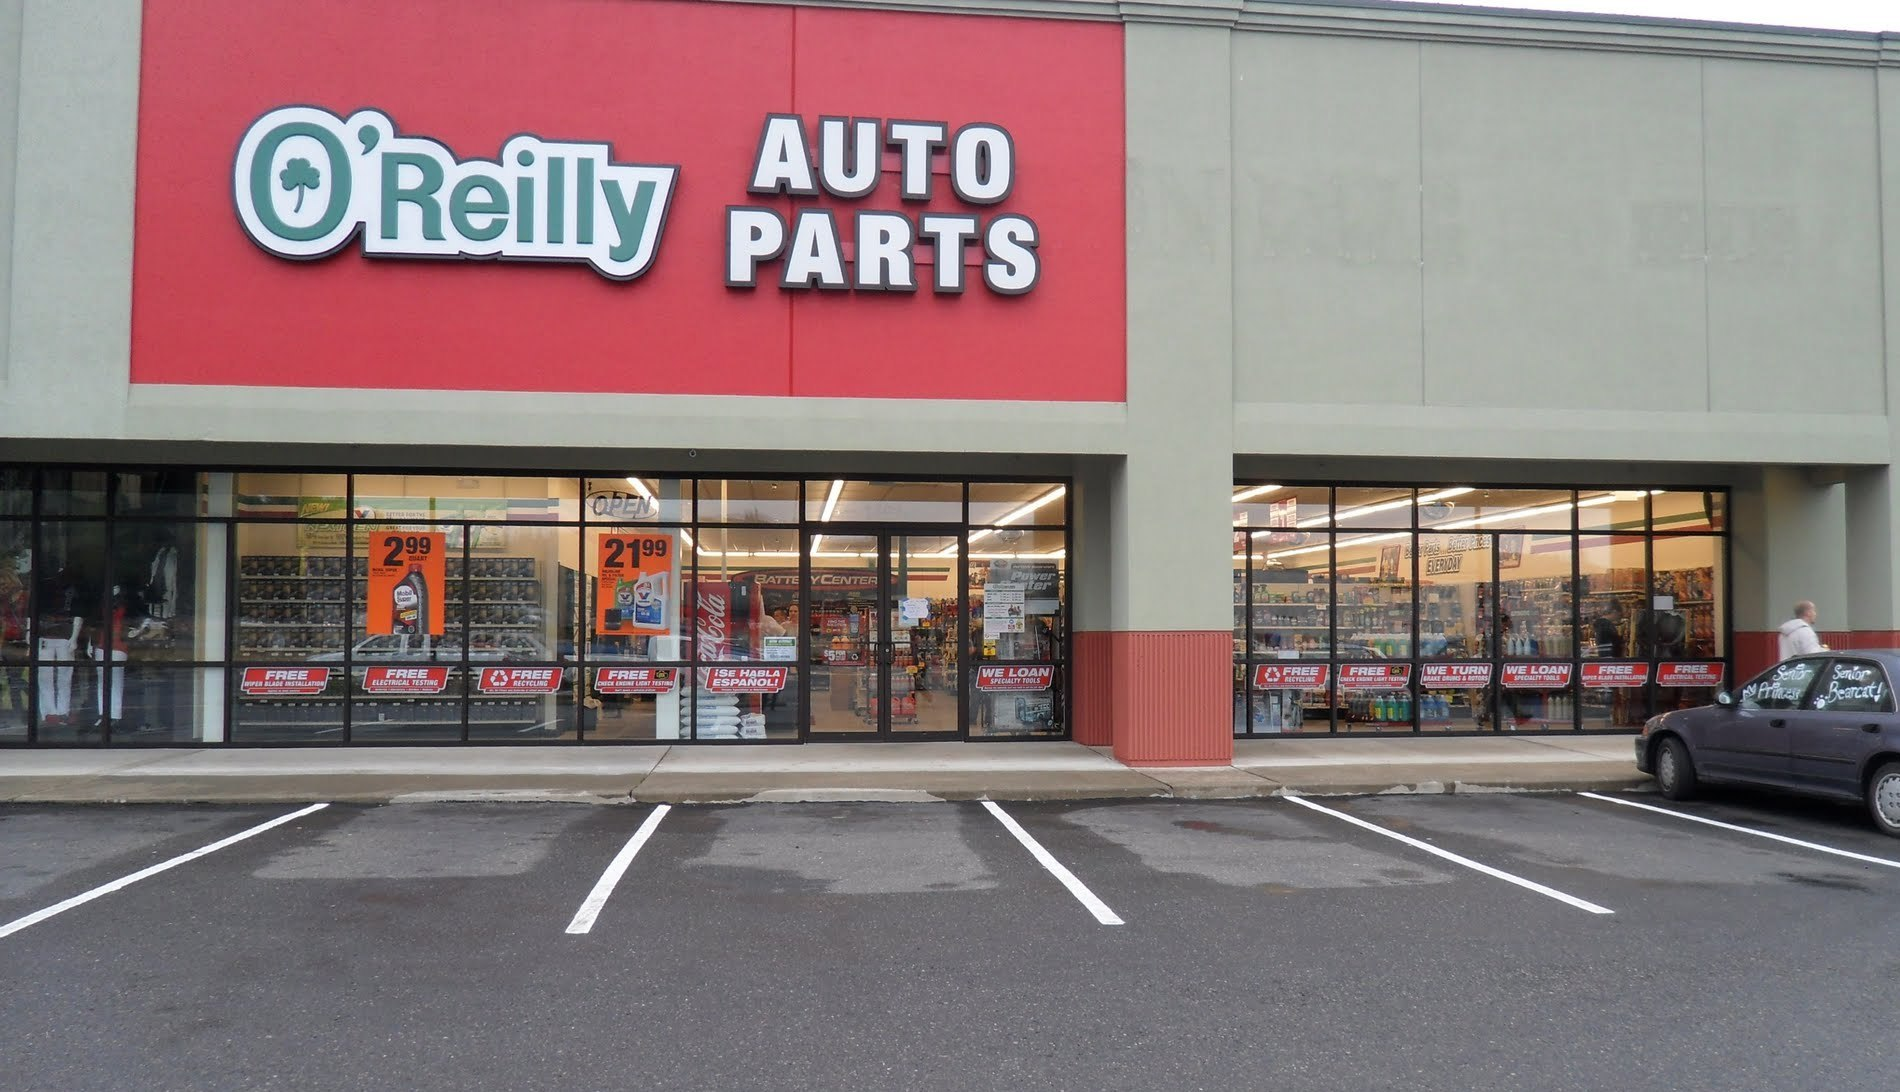 Oreillys auto parts stock : Best buy appliances clearance